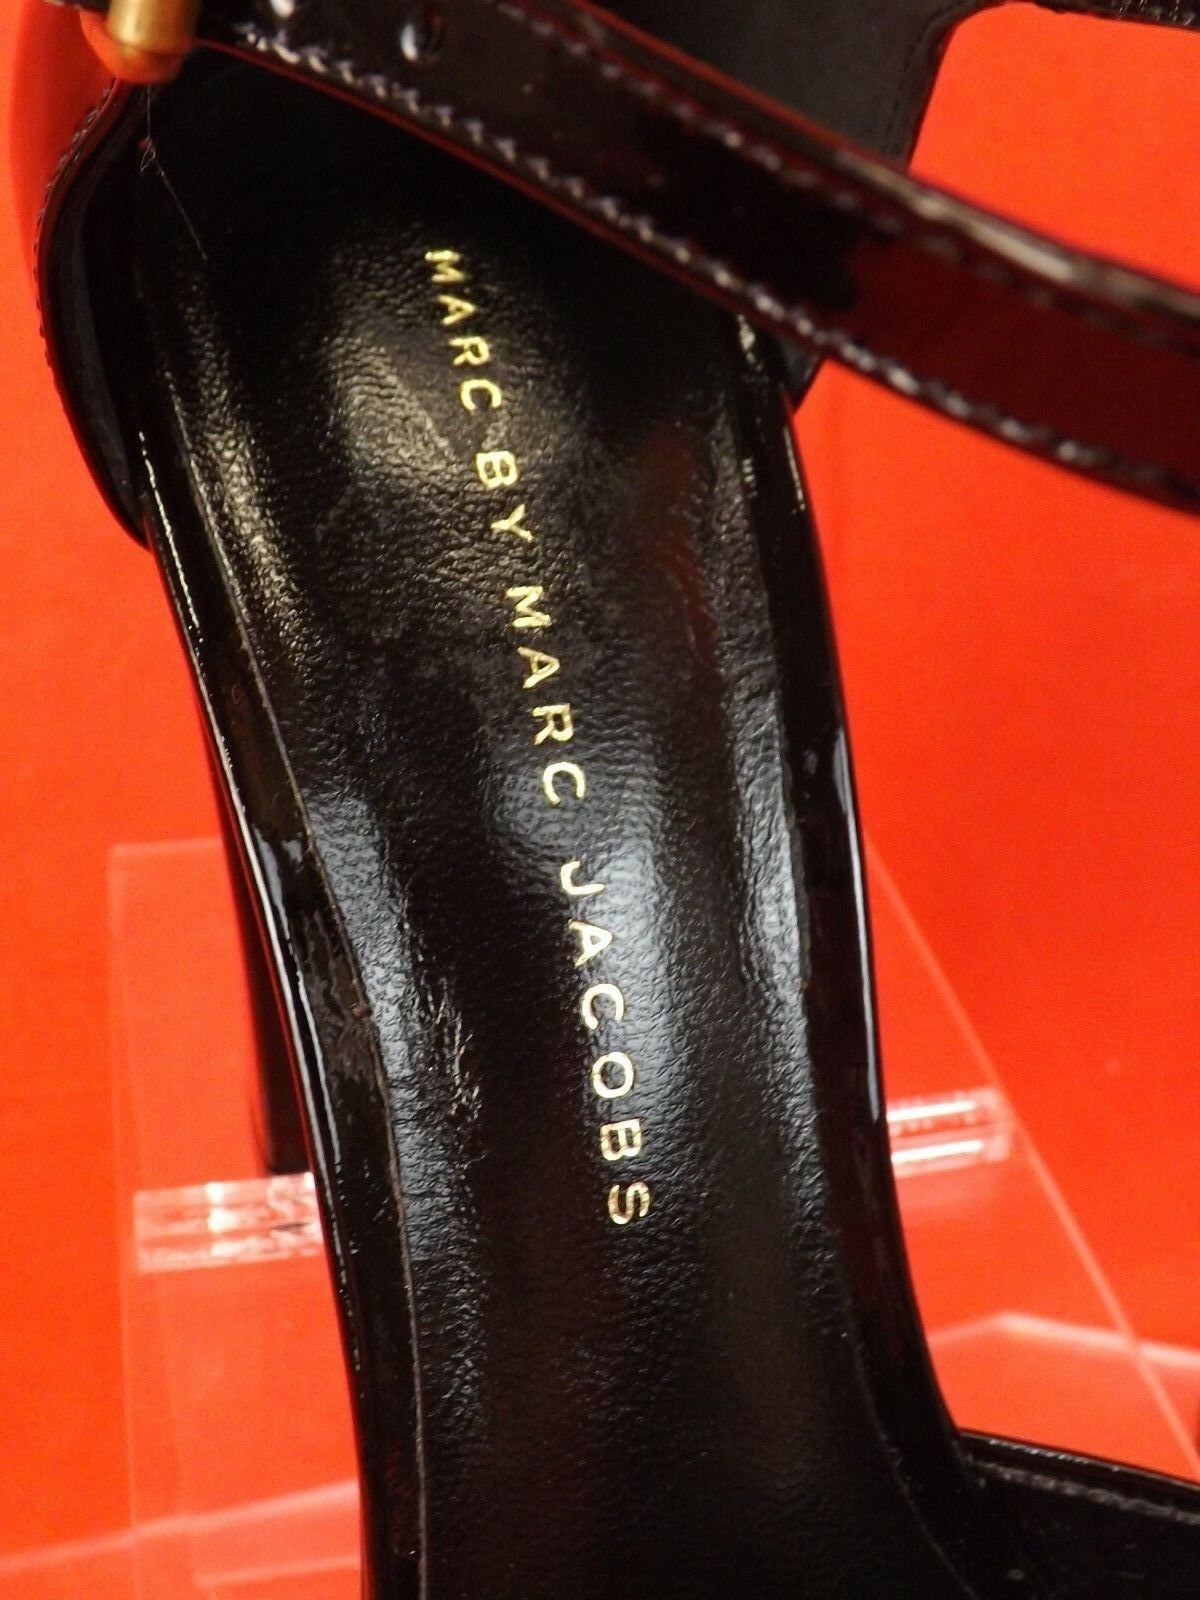 NIB MARC BY MARC JACOBS BLACK PATENT PATENT PATENT LEATHER BOW MARY JANE PUMPS 37.5 ITALY 114579